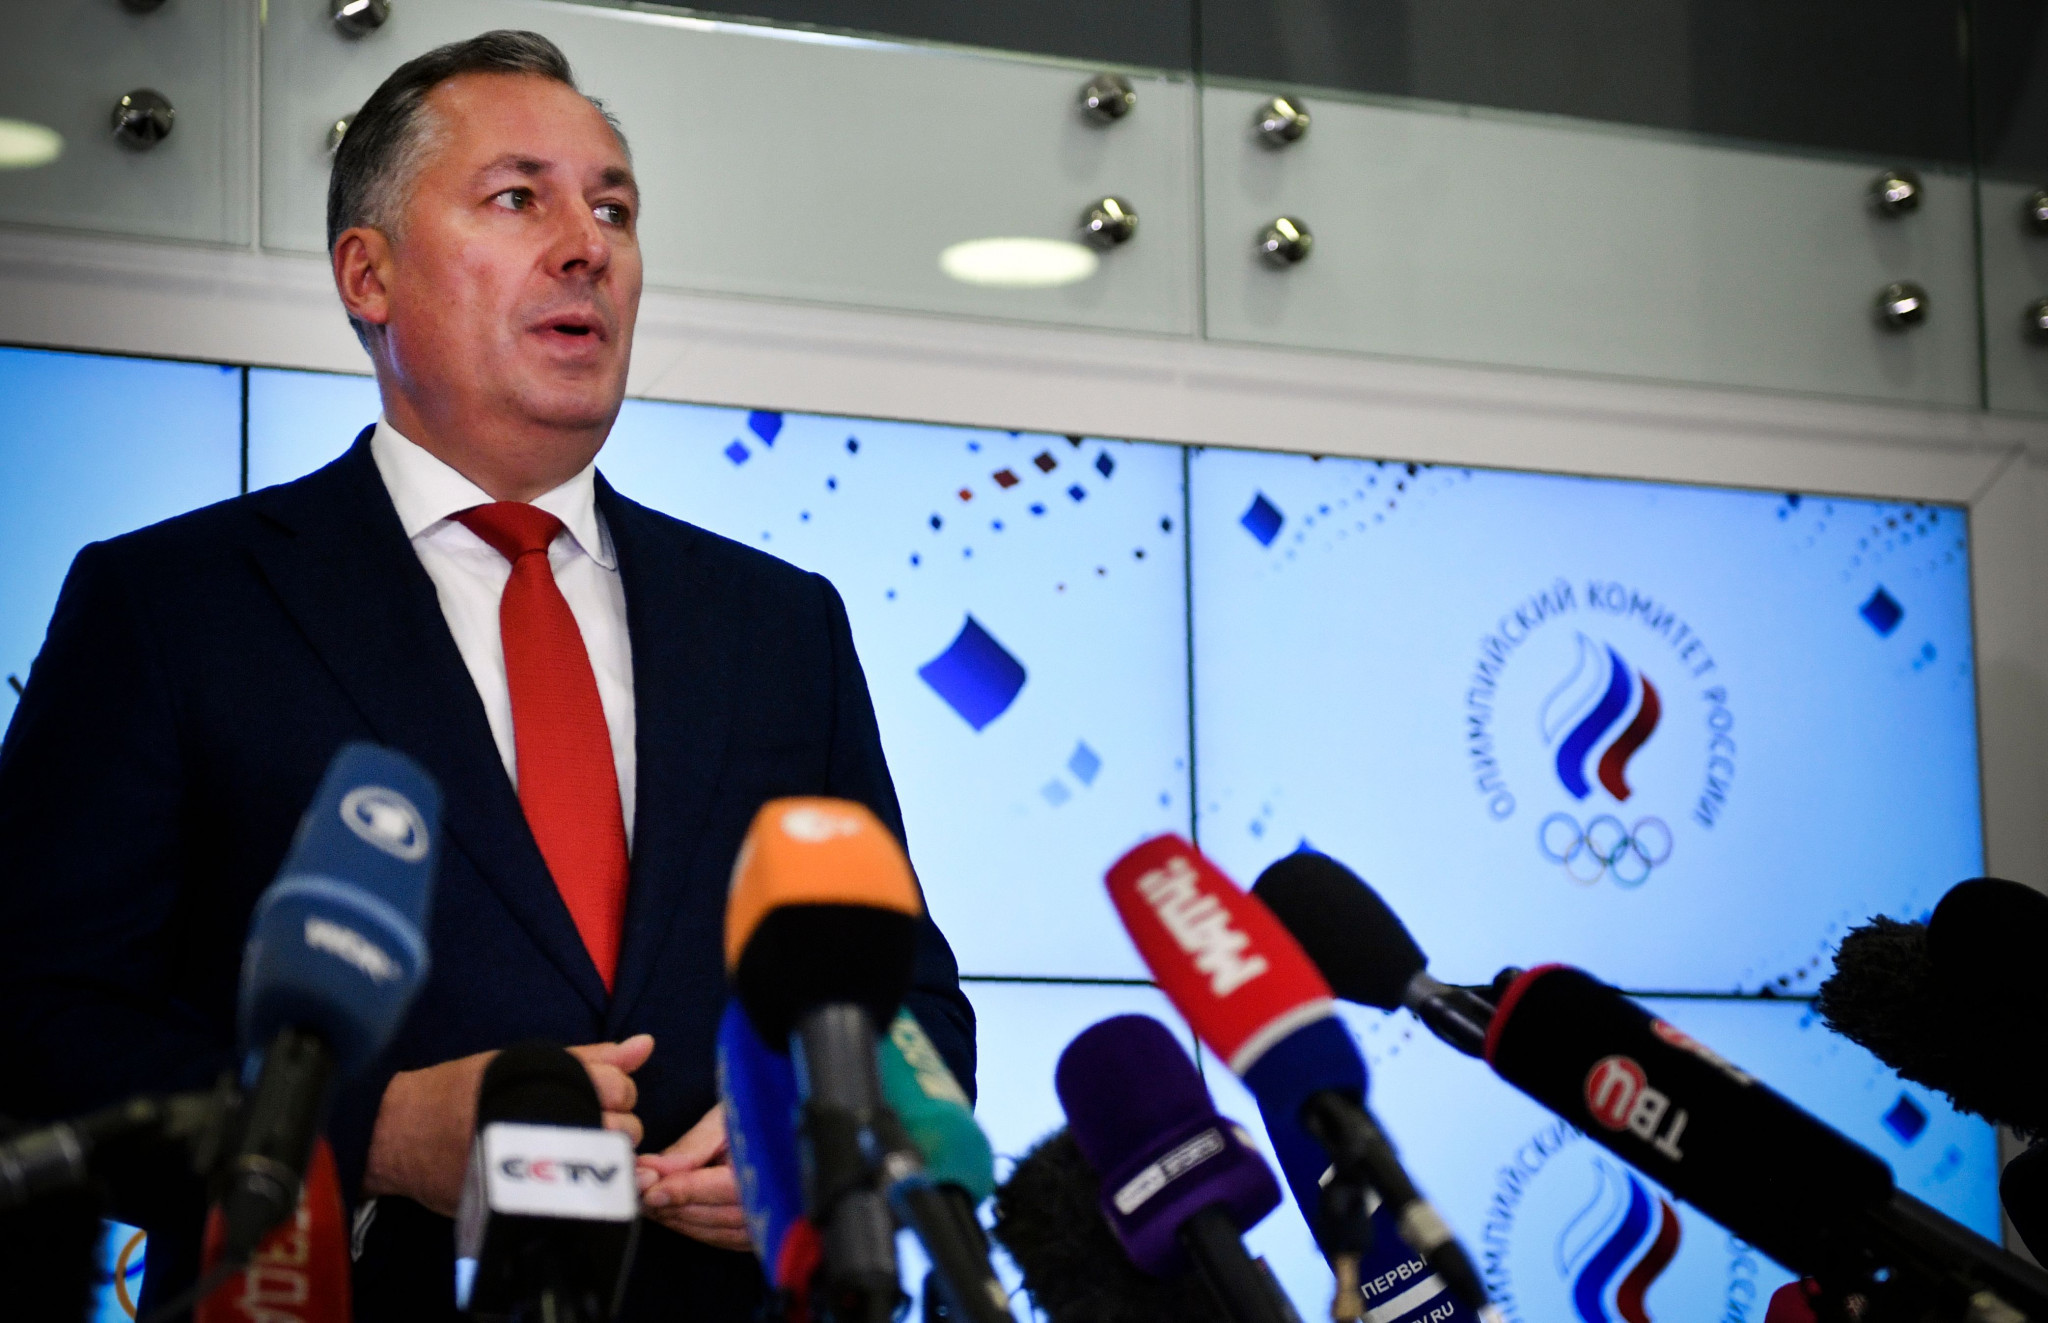 Stanislav Pozdnyakov addressed the media after an ROC meeting in Moscow ©Getty Images